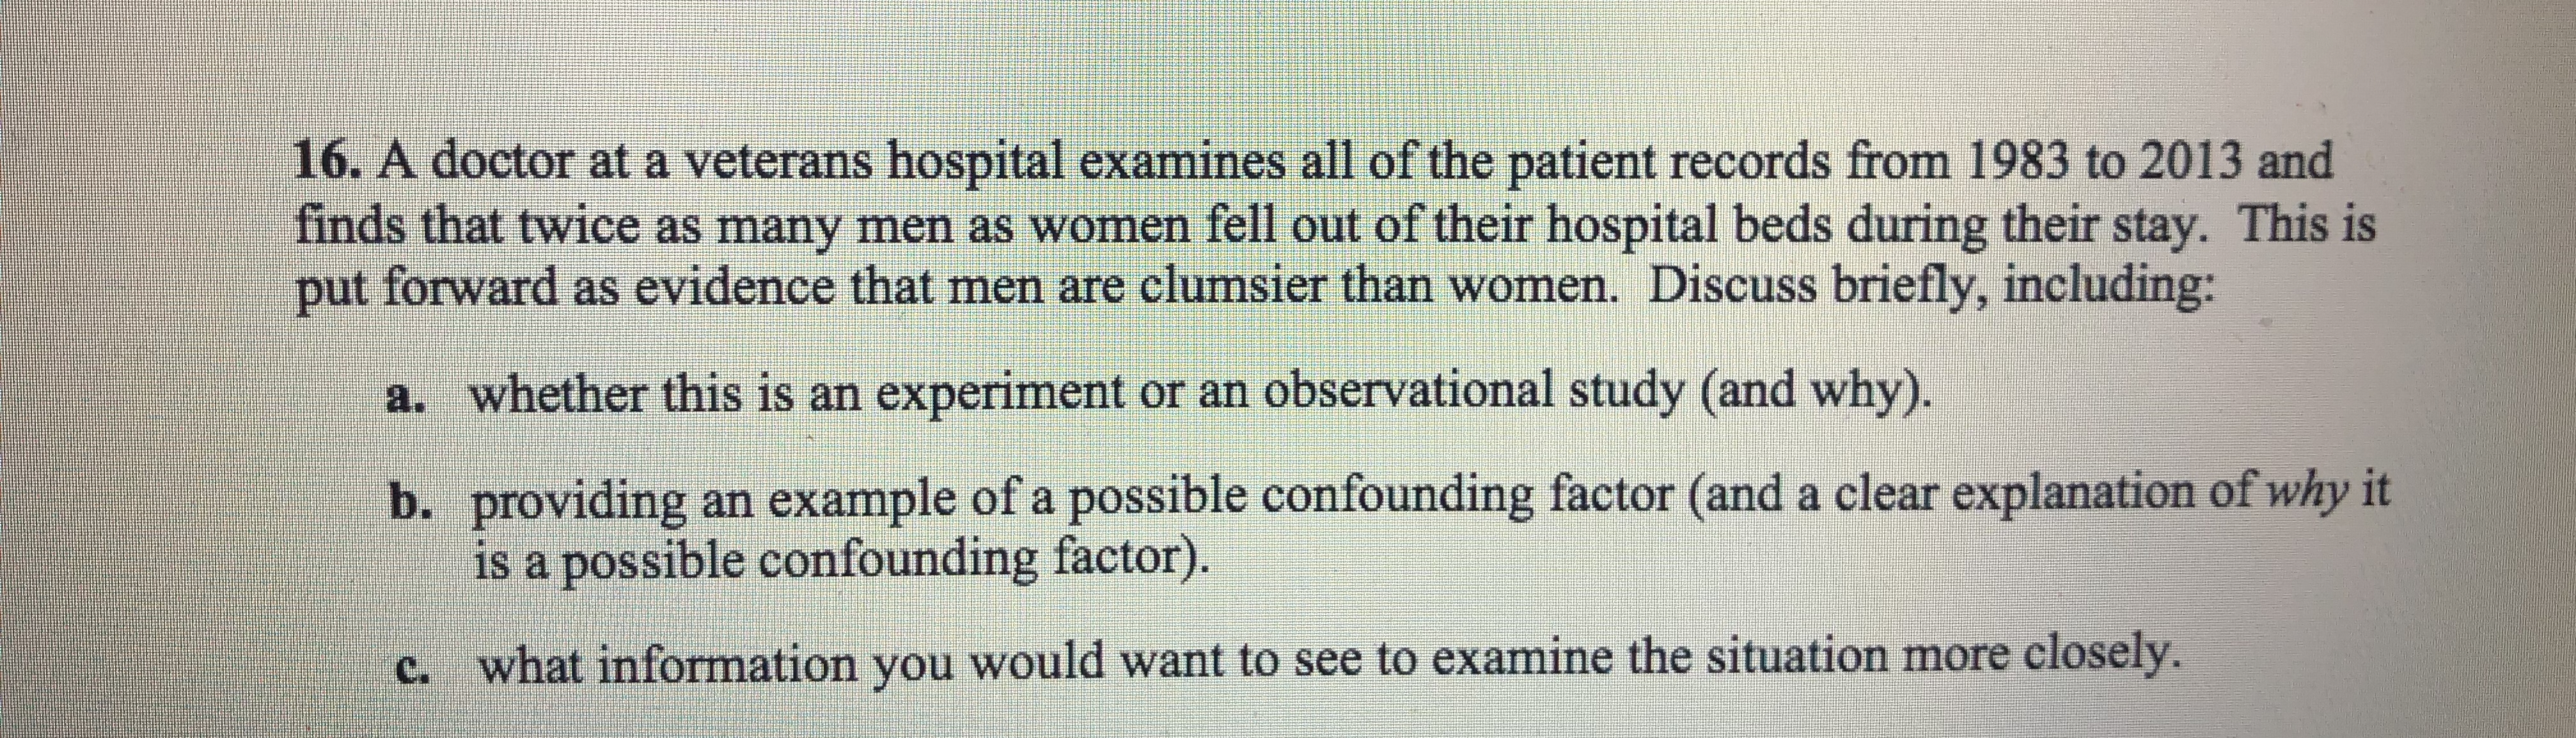 16·A doctor at a veterans hospital examines all of the patient records from 1983 to 2013 and finds that twice as many men as women fell out of their hospital beds during their stay. This is put forward as evidence that men are clumsier than women. Discuss briefly, including: a. whether this is an experiment or an observational study (and why) b. providing an example of a possible confounding factor (and a clear explanation of why it is a possible confounding factor) what information you would want to see to examine the situation more closely. c.